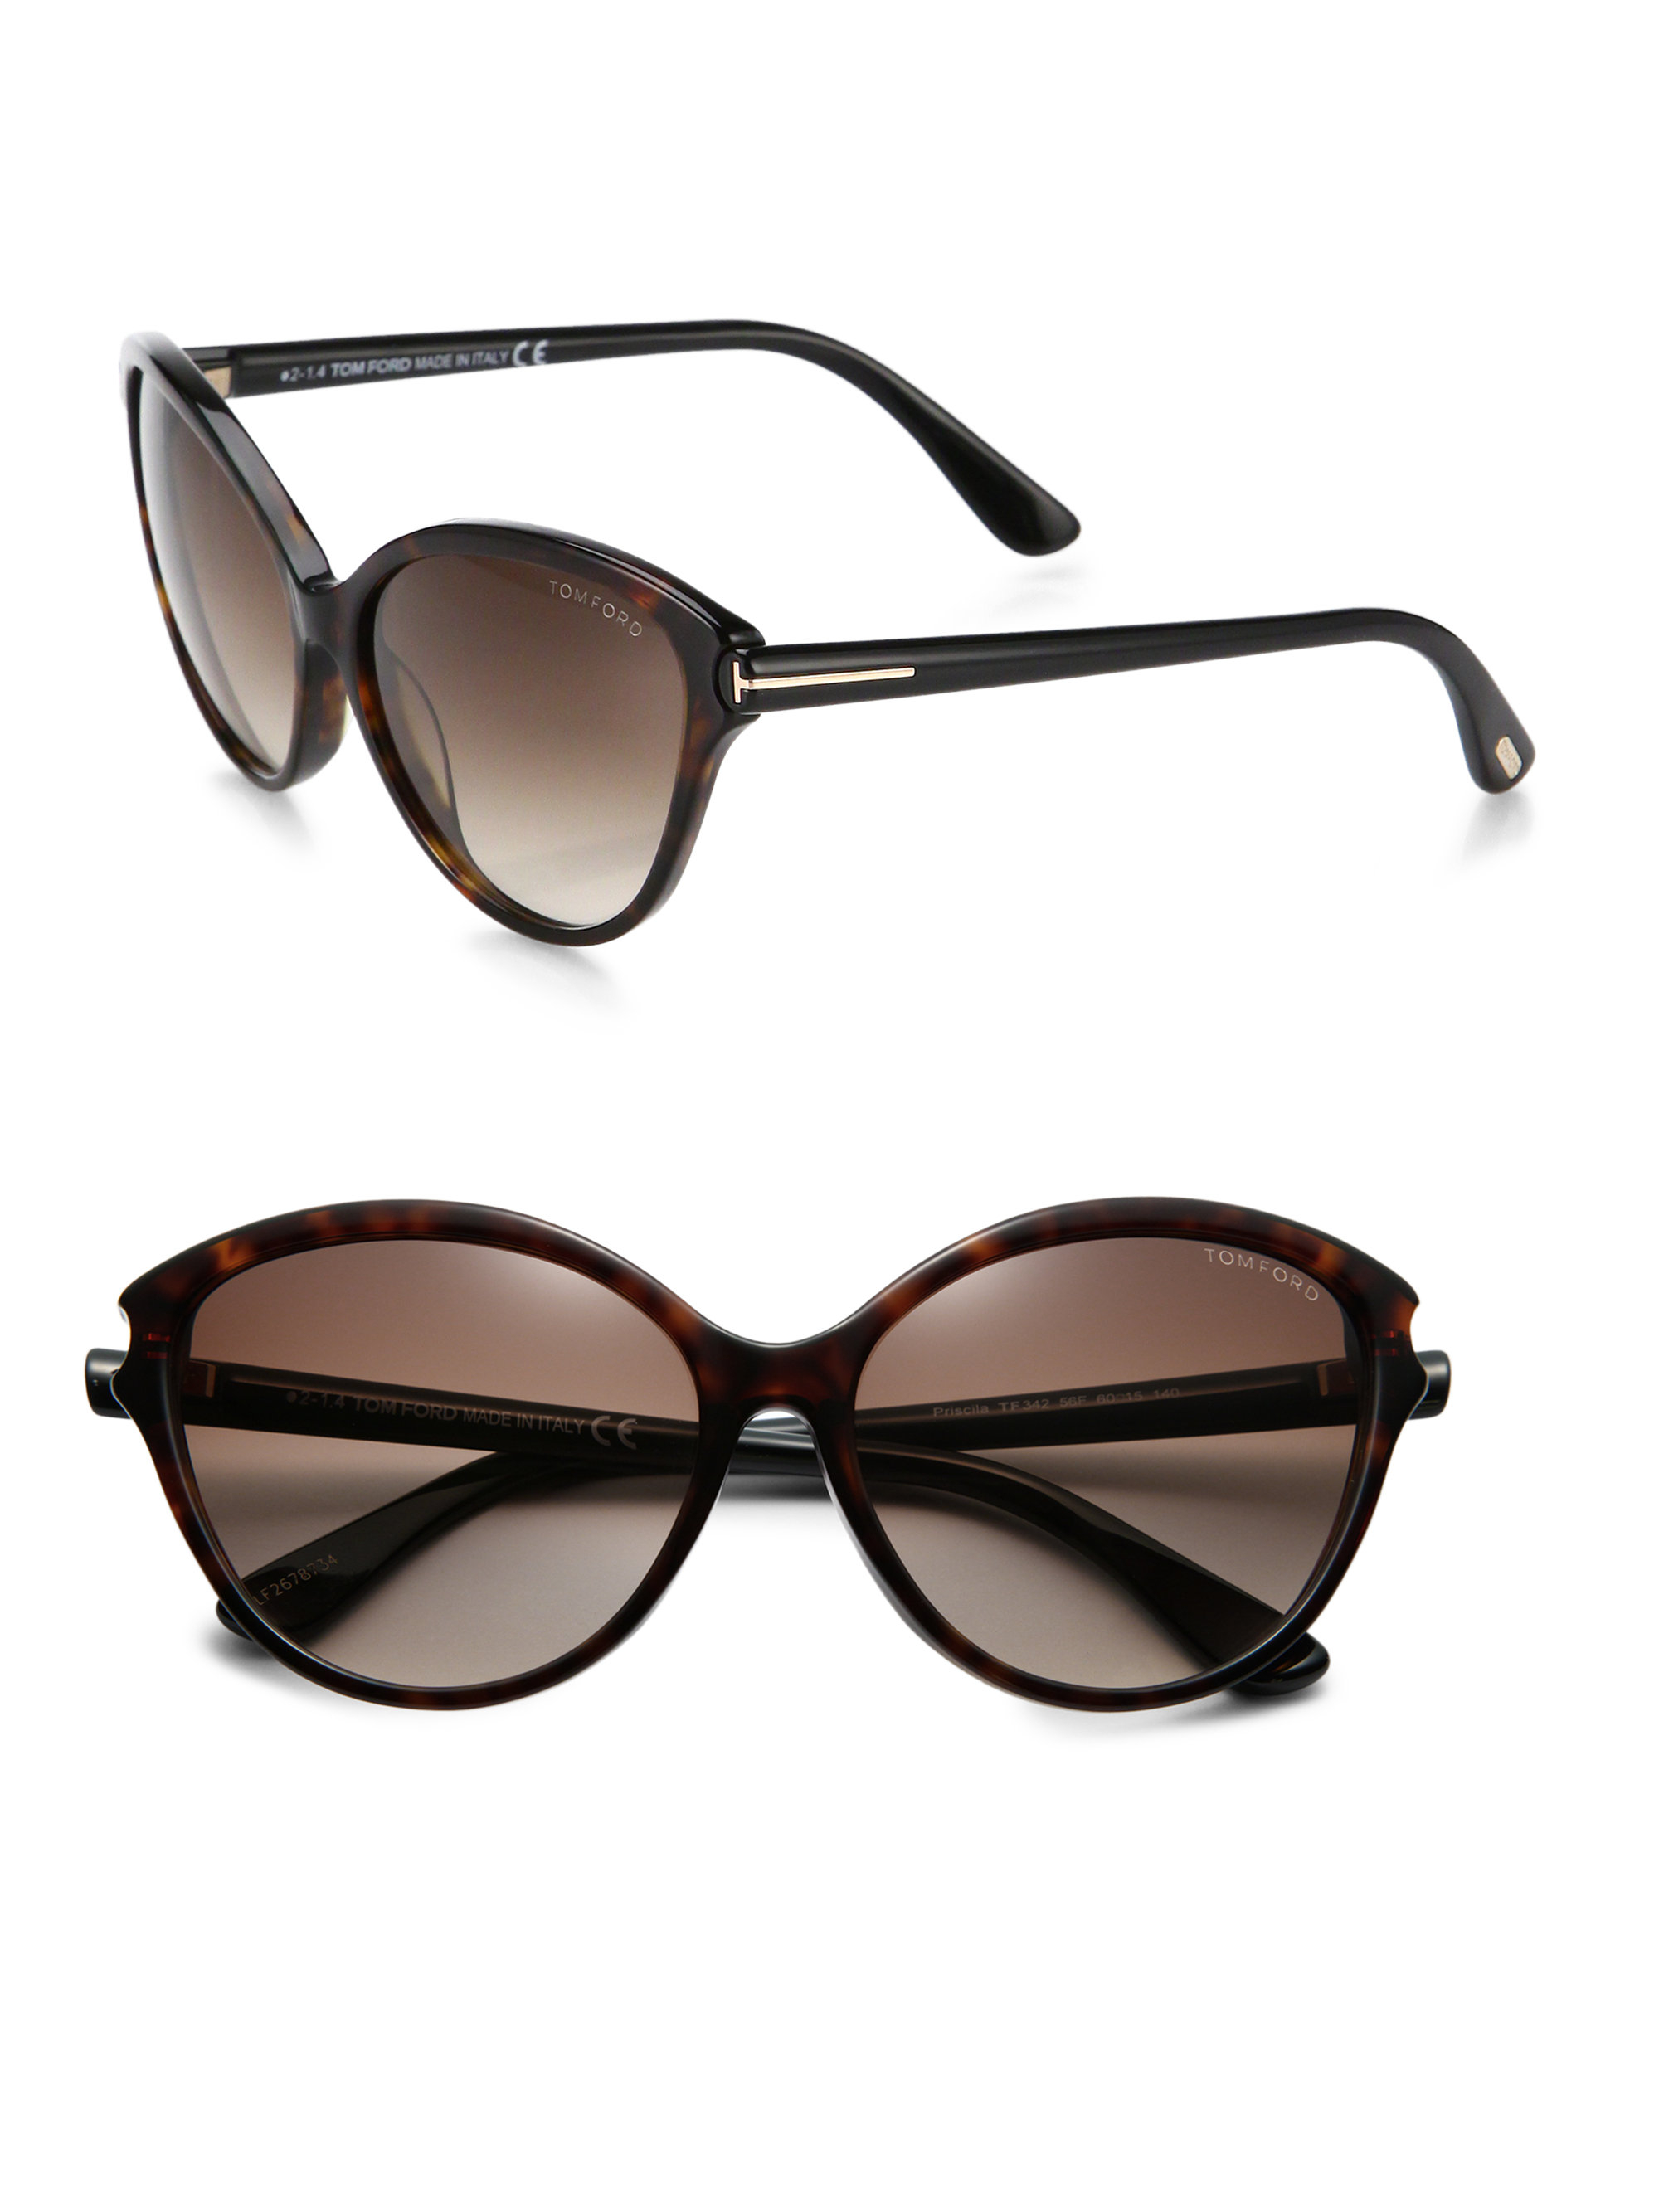 tom ford eyewear priscila 60mm cats eye sunglasses product 1 22321991. Cars Review. Best American Auto & Cars Review